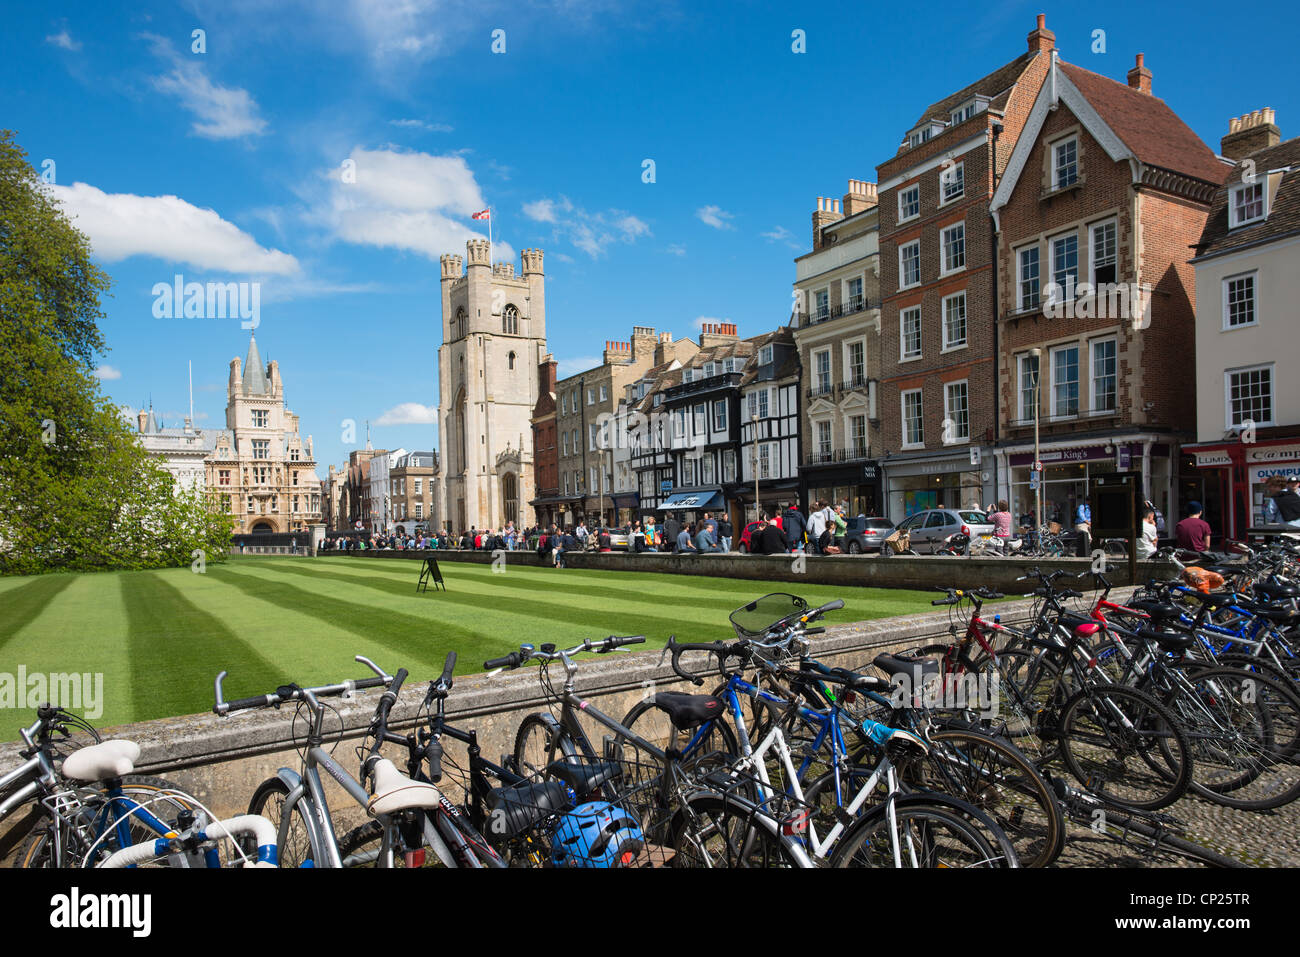 Rows of bicycles at Kings Parade. Cambridge, England. -- HIGH RESOLUTION IMAGE TAKEN WITH CARL ZEISS LENS - Stock Image